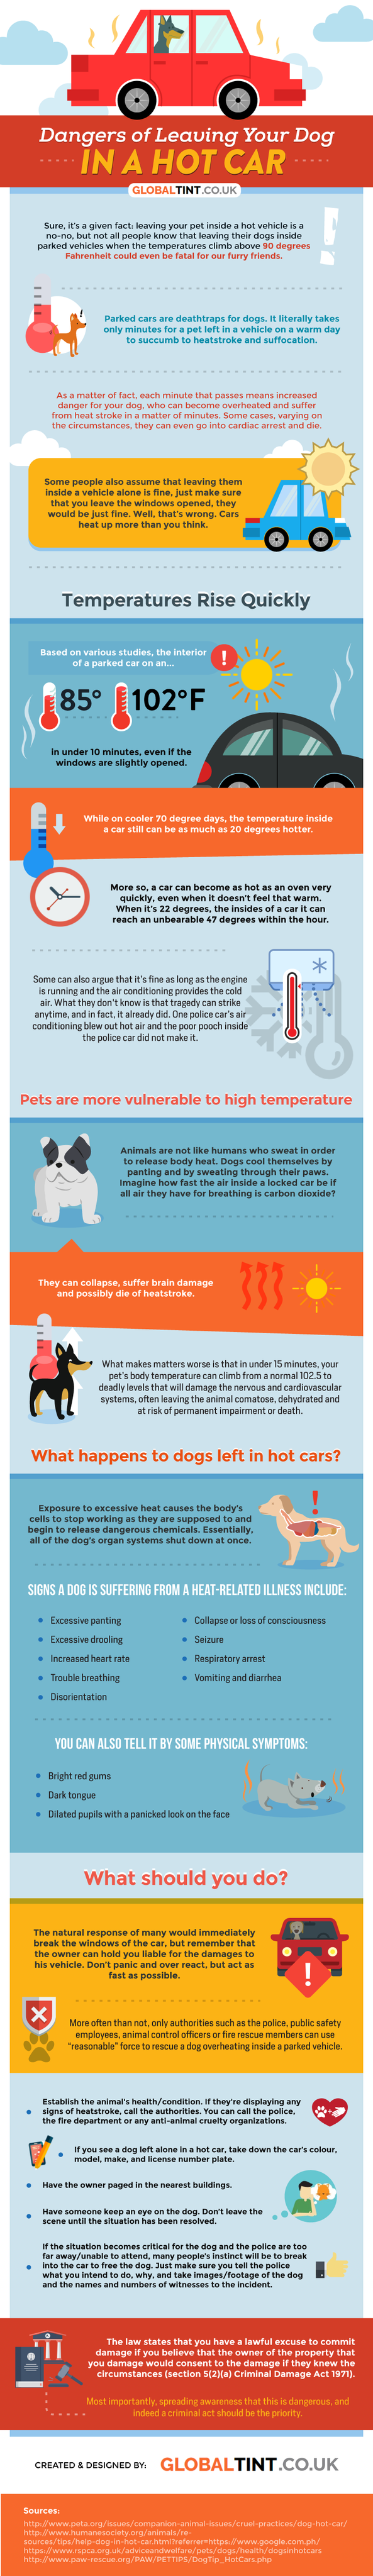 dangers of leaving your dog in a hot car